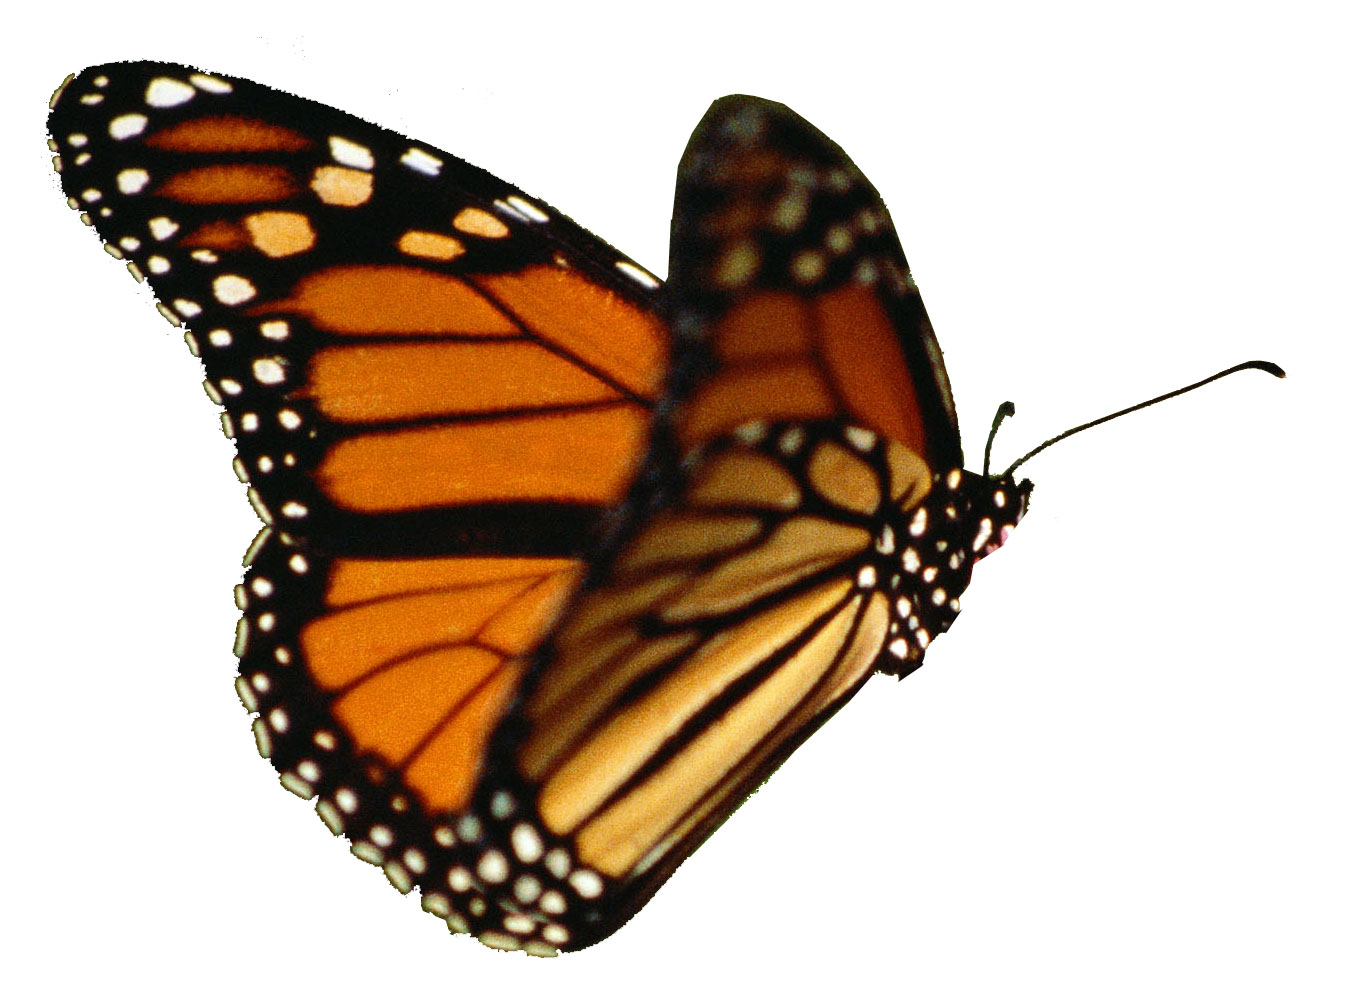 images of butterflies flying - photo #3